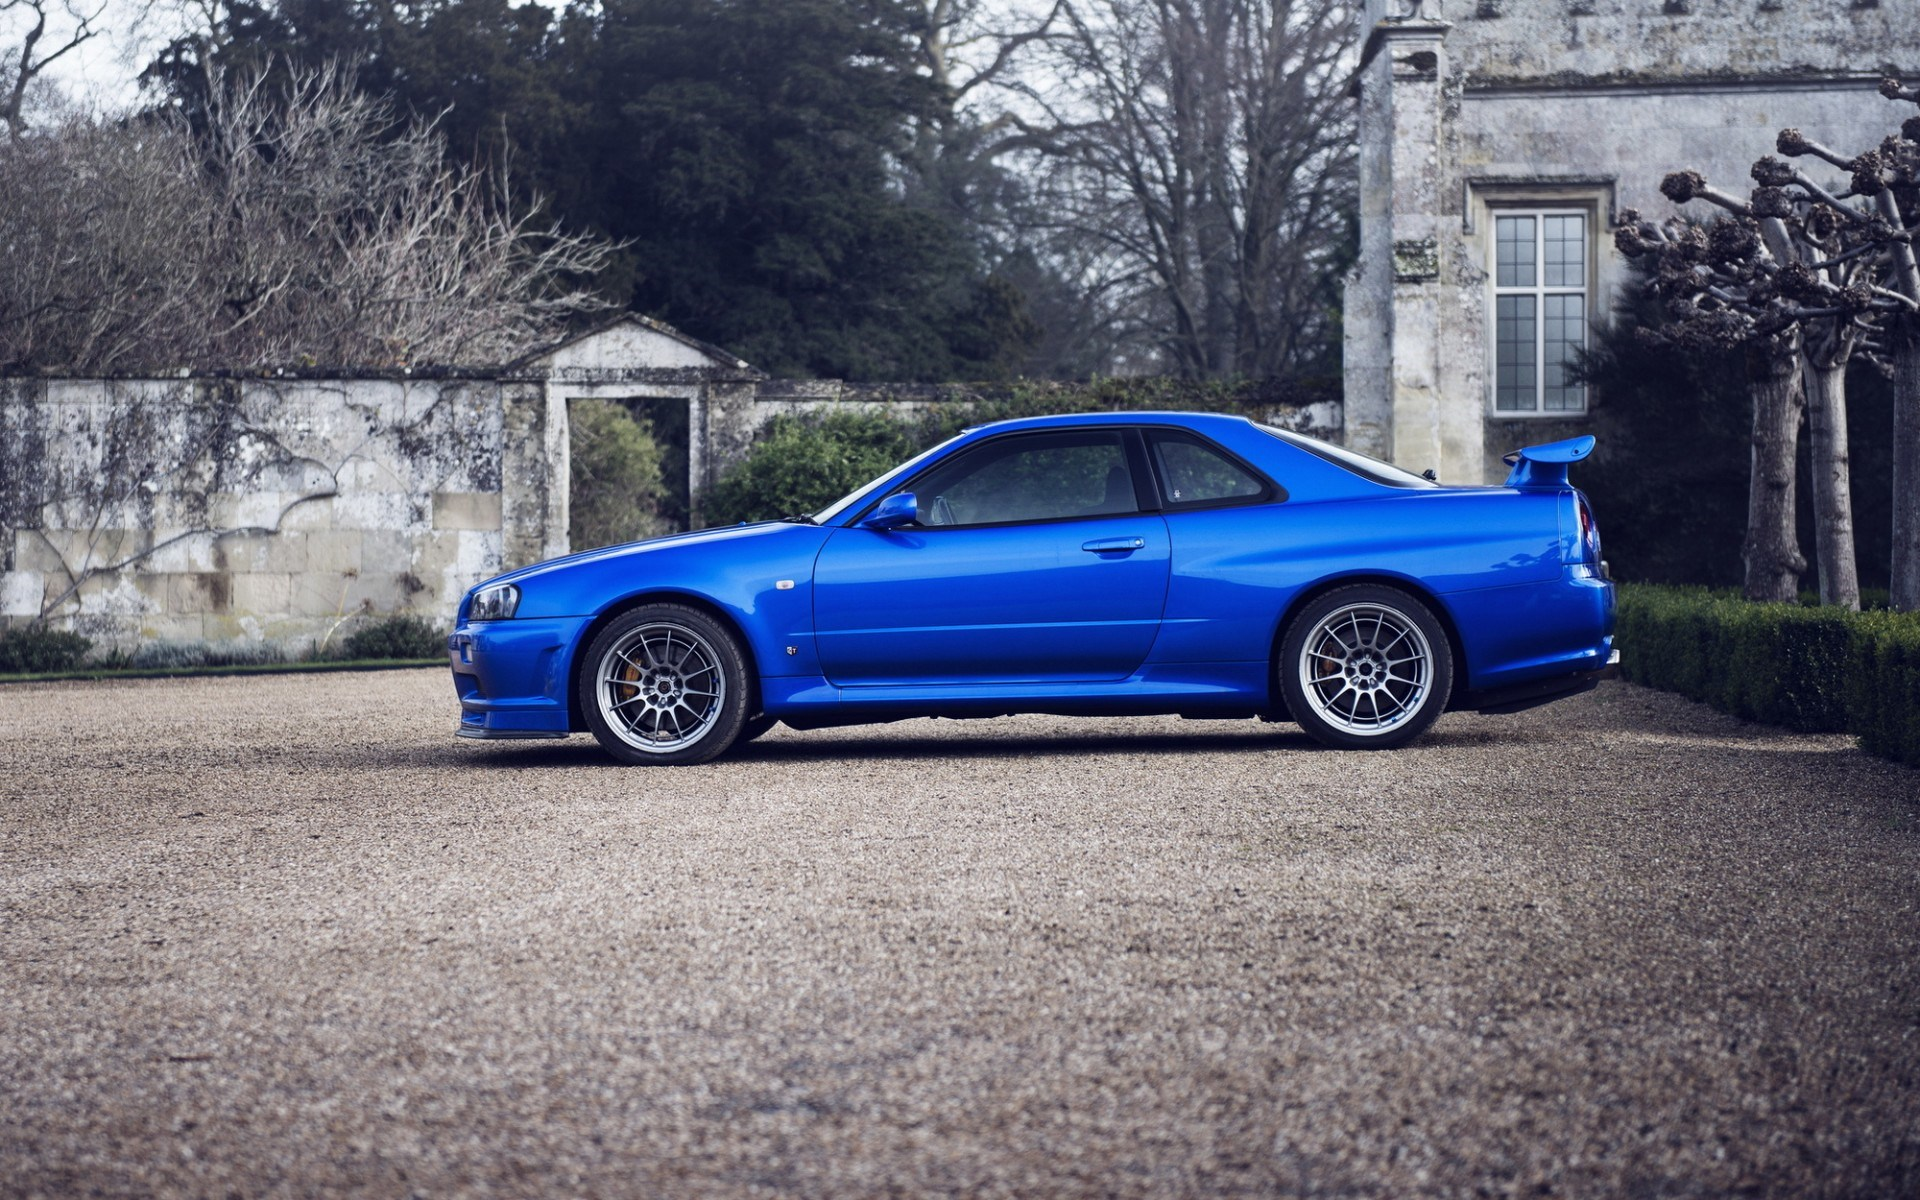 Download Nissan Skyline Wallpaper 29470 1920x1200 Px High